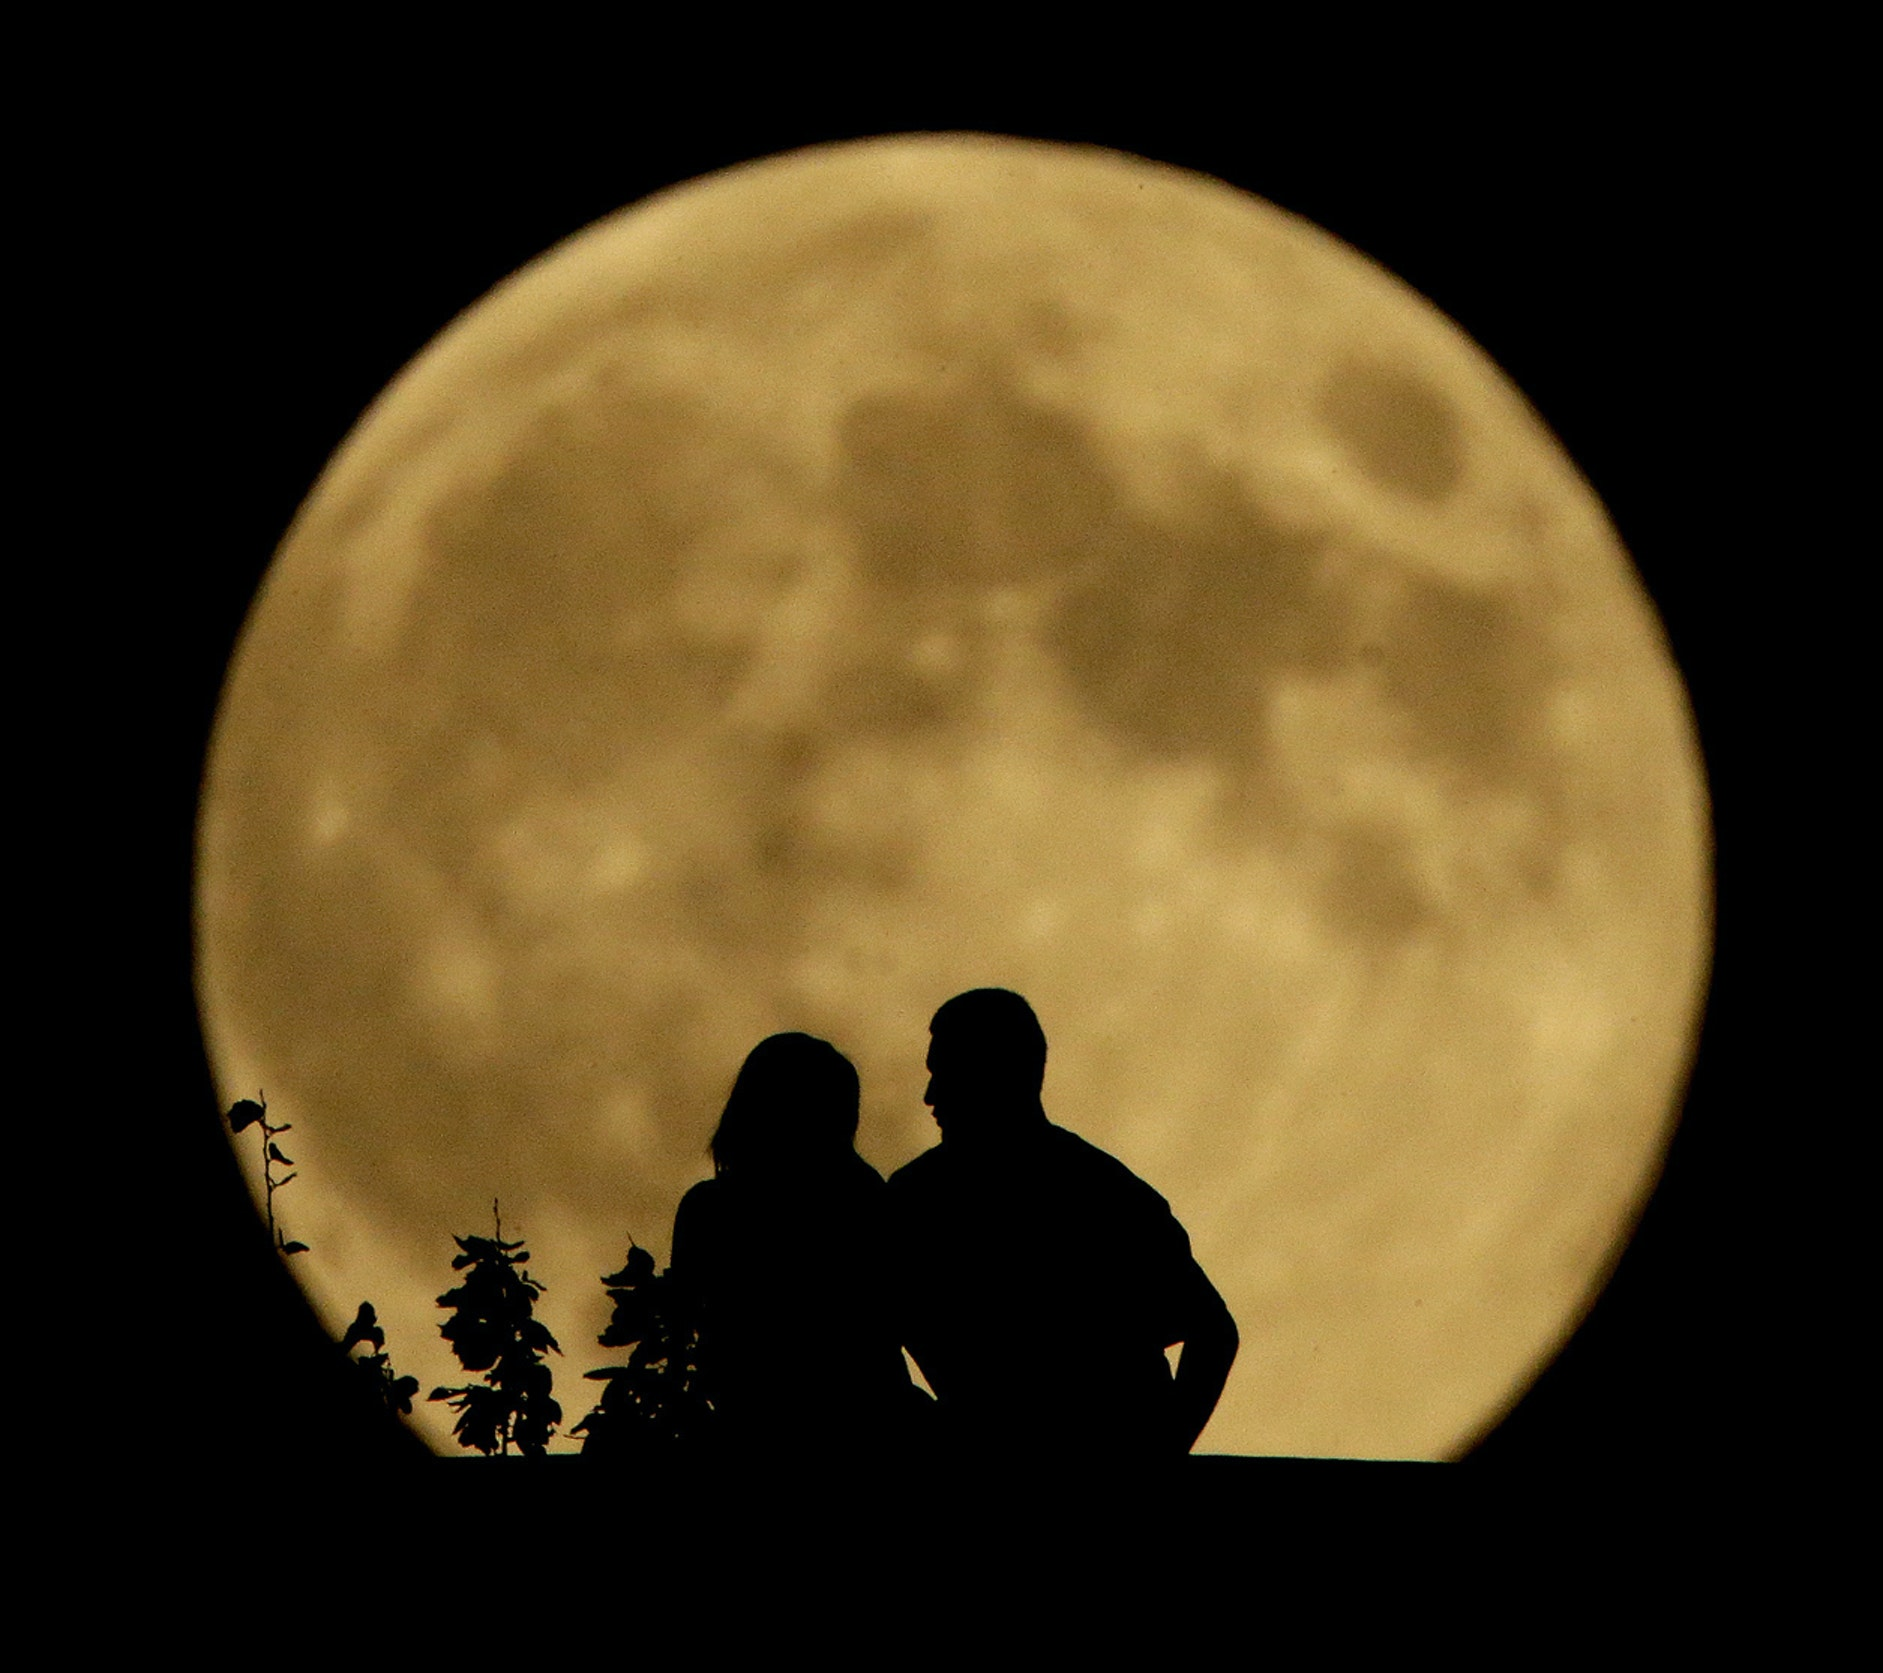 Get out there and enjoy this supermoon!